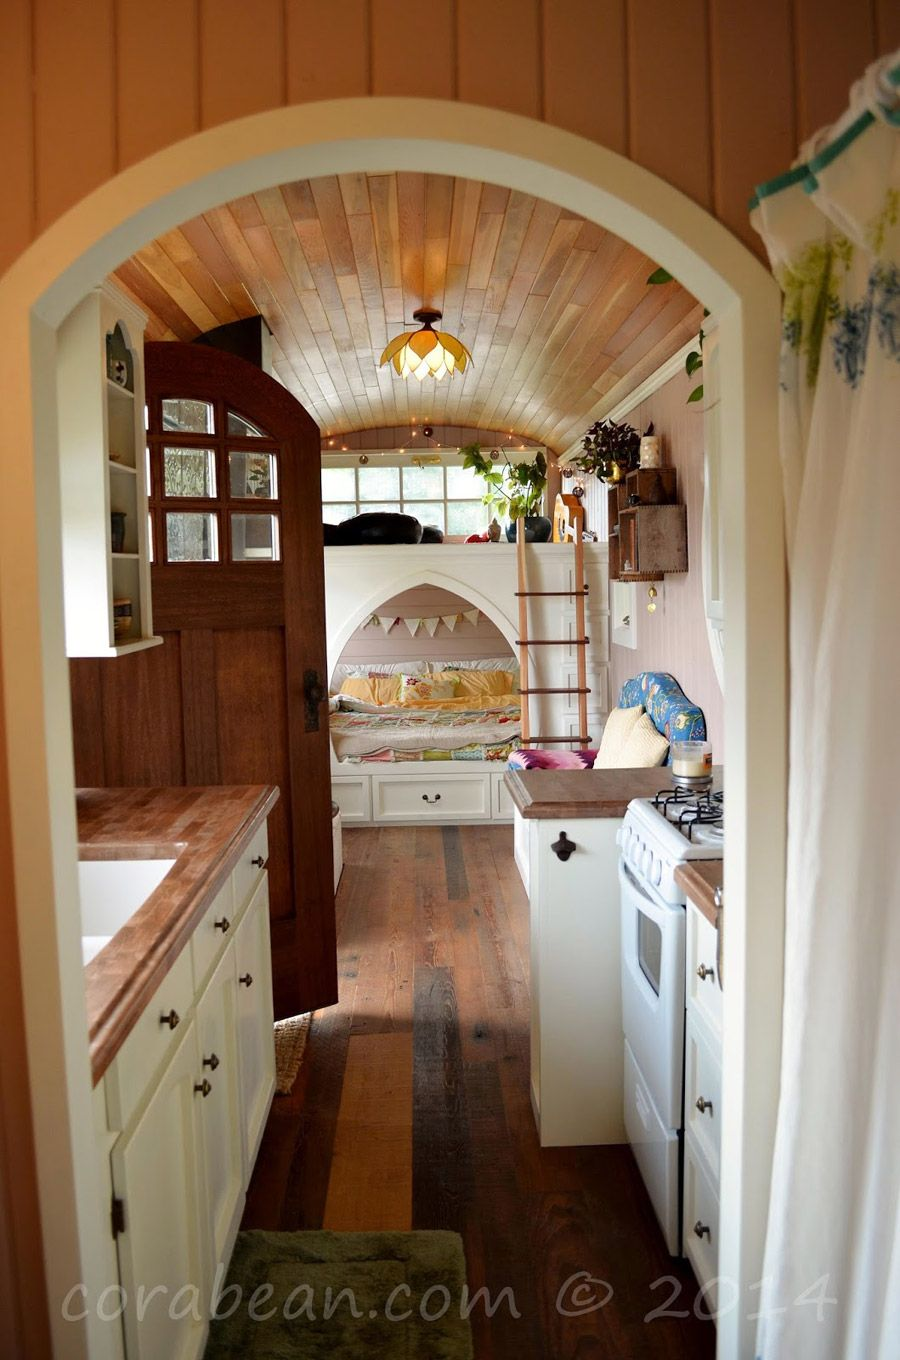 A Retired School Bus Completely Transformed Into Micro Living E In Portland Oregon